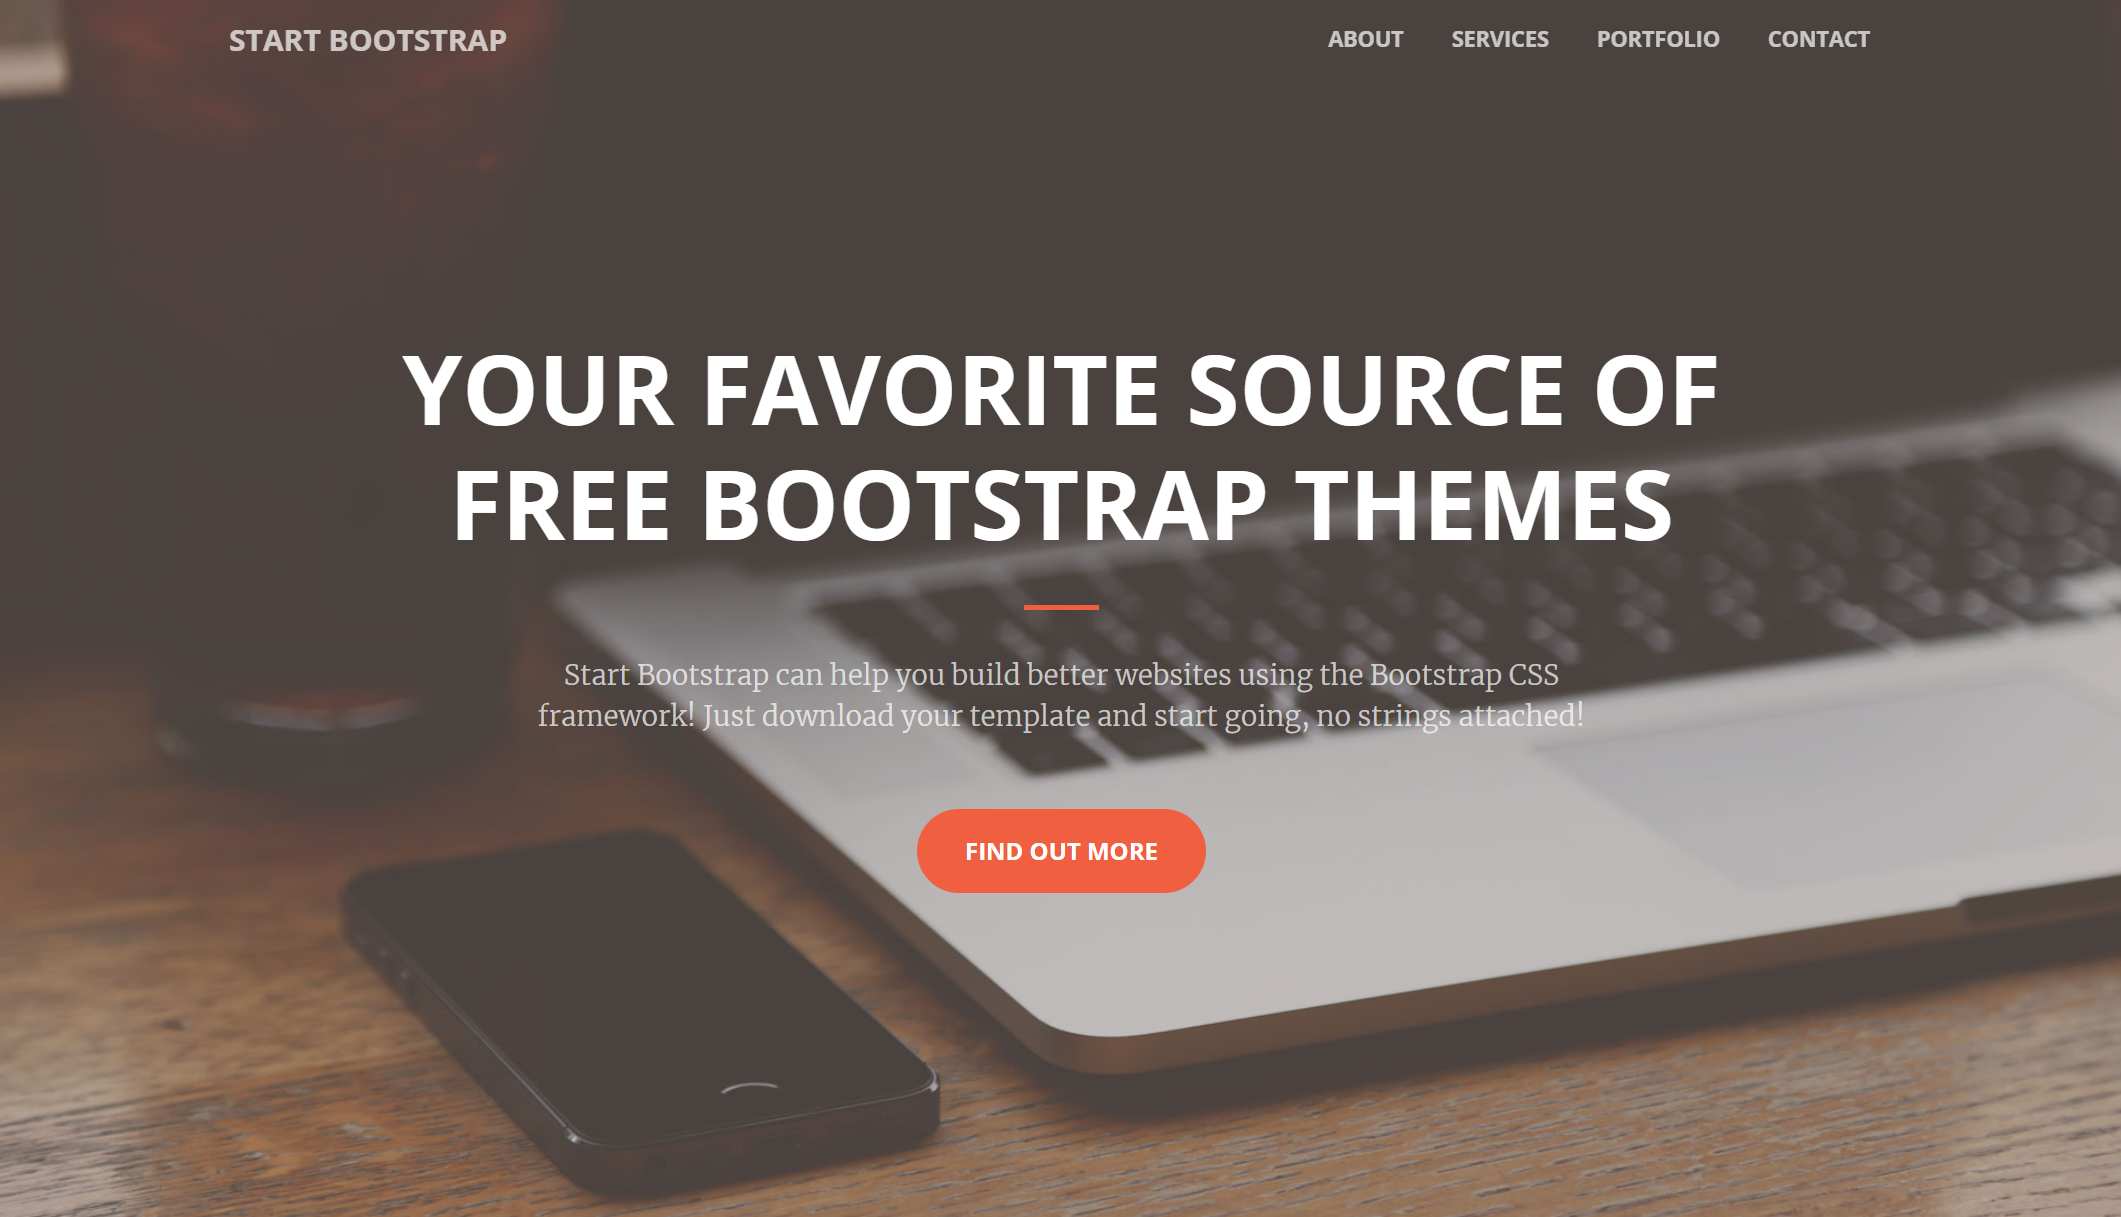 Creative–A Creative Bootstrap Portfolios and Businesses Website Template